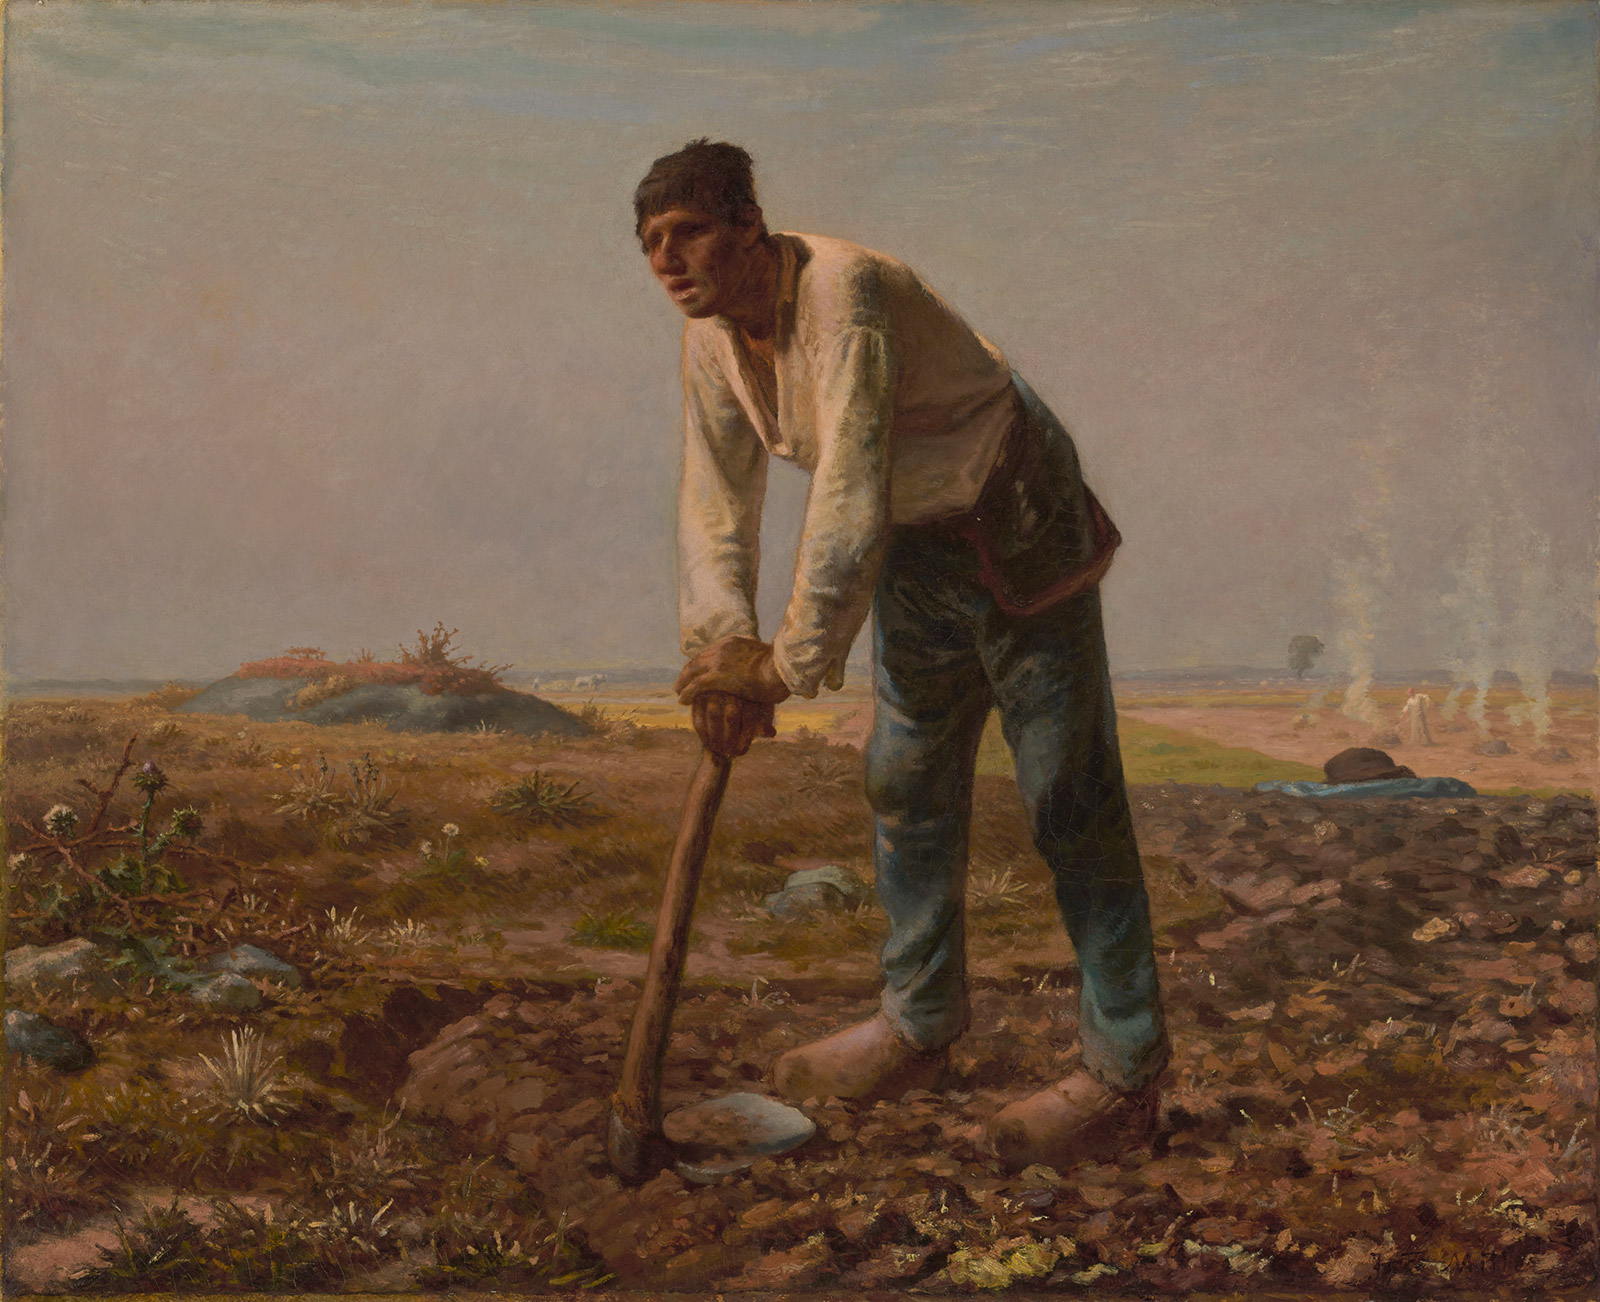 A man in a white shirt and jeans leans on a hoe in a field